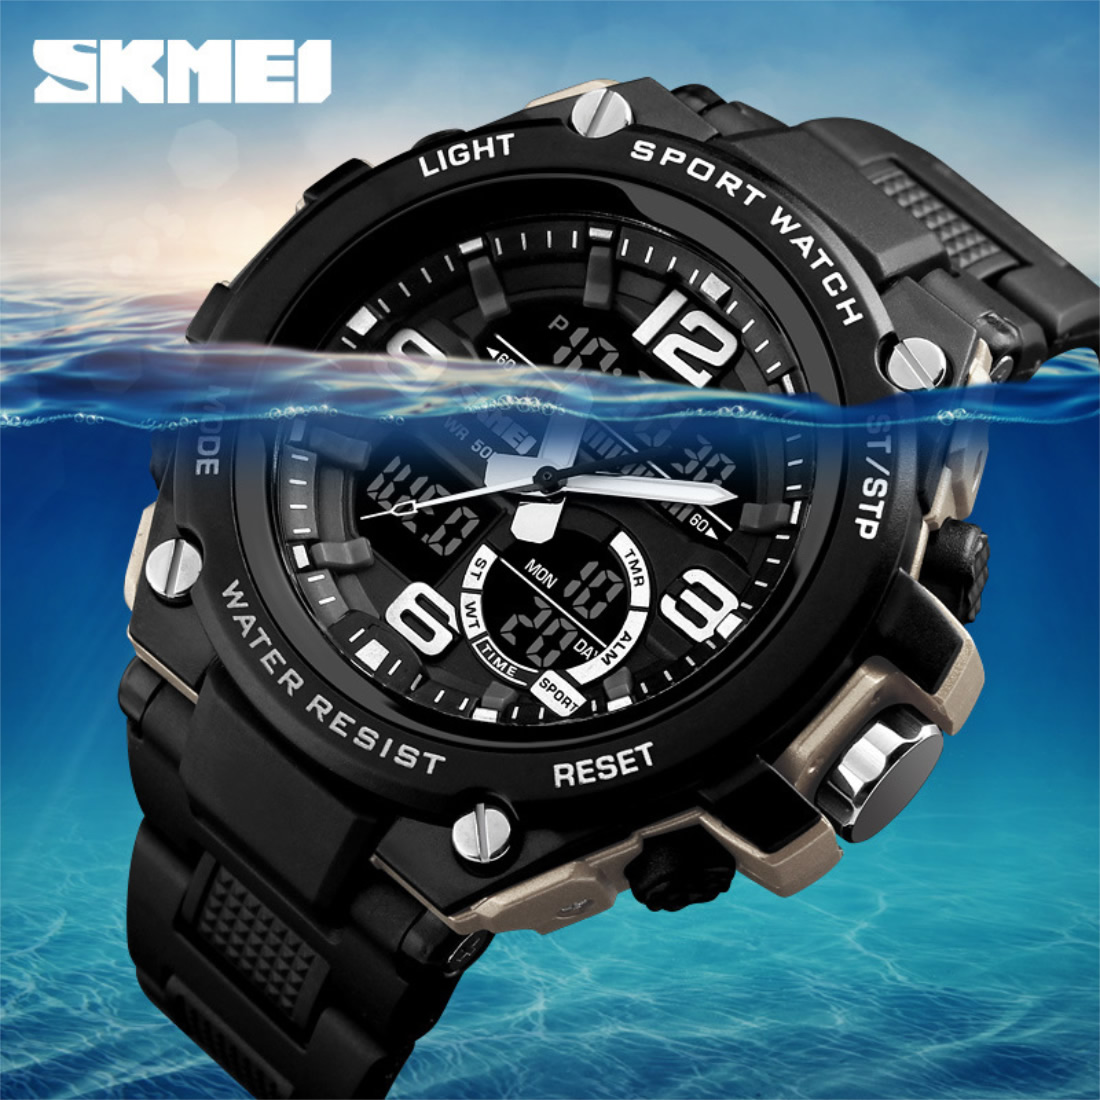 Men Sports Watches Digital Wristwatches LED 50M Waterproof Military Army Watch Resistant Relogio Masculino For Mens Quartz Watch in Sports Watches from Watches